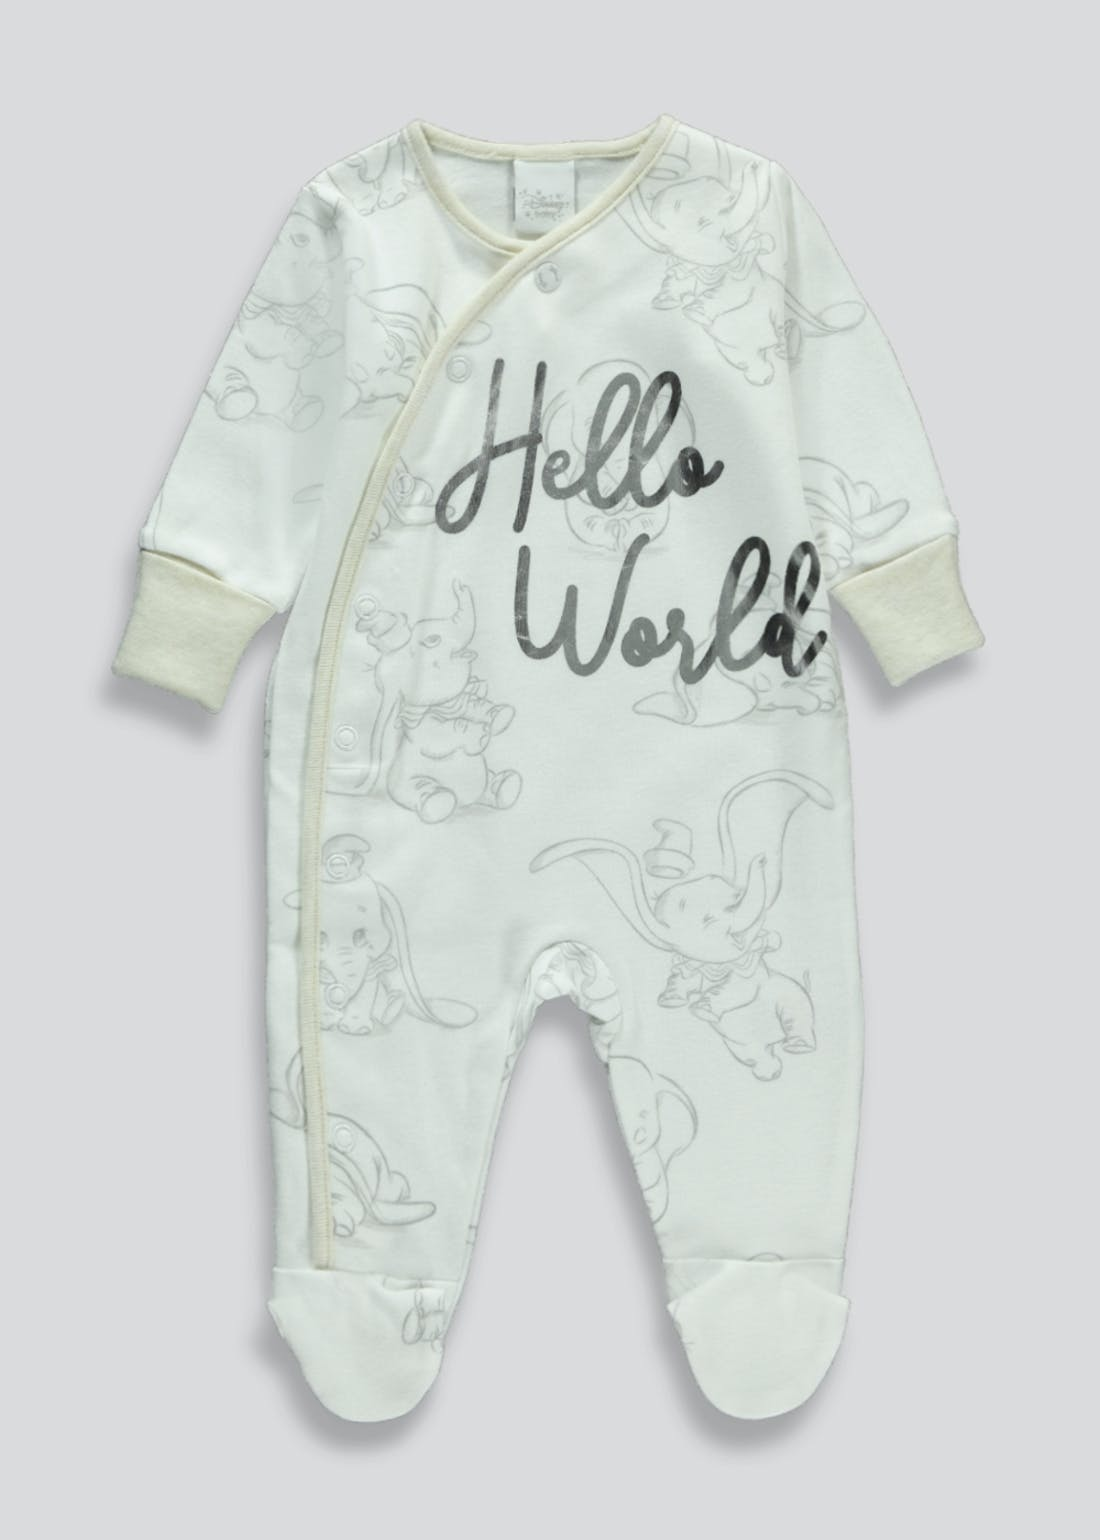 Unisex Disney Dumbo Baby Grow (Newborn-9mths)